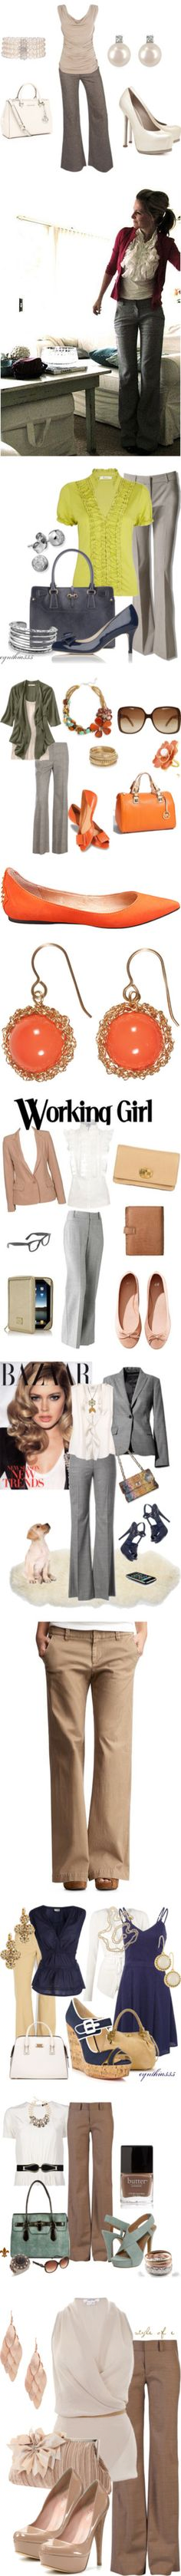 """""""Most of these outfits are perfect ideas for those with a small bust and larger bottom. The embellished and draping tops are good for making the bust look fuller and the slight flare pant helps balance the waist and bottom."""""""